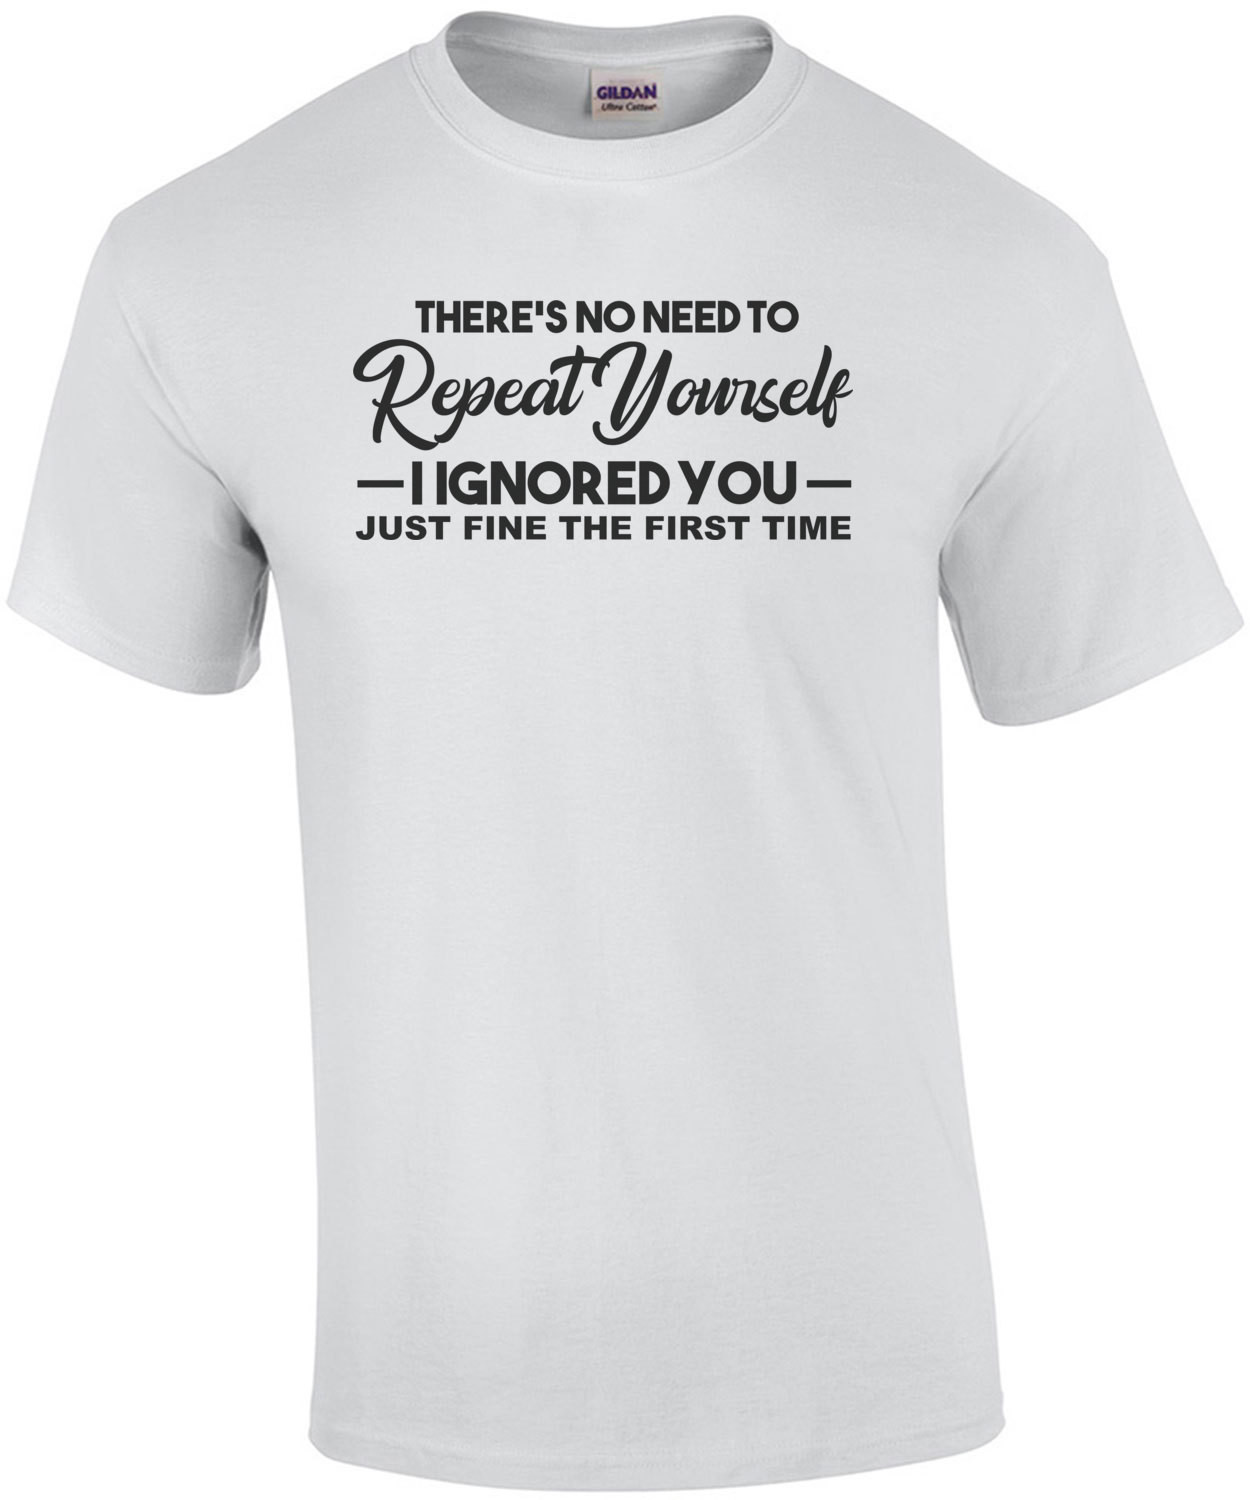 There's no need to repeat yourself I ignored you just fine the first time - Sarcasm T-Shirt